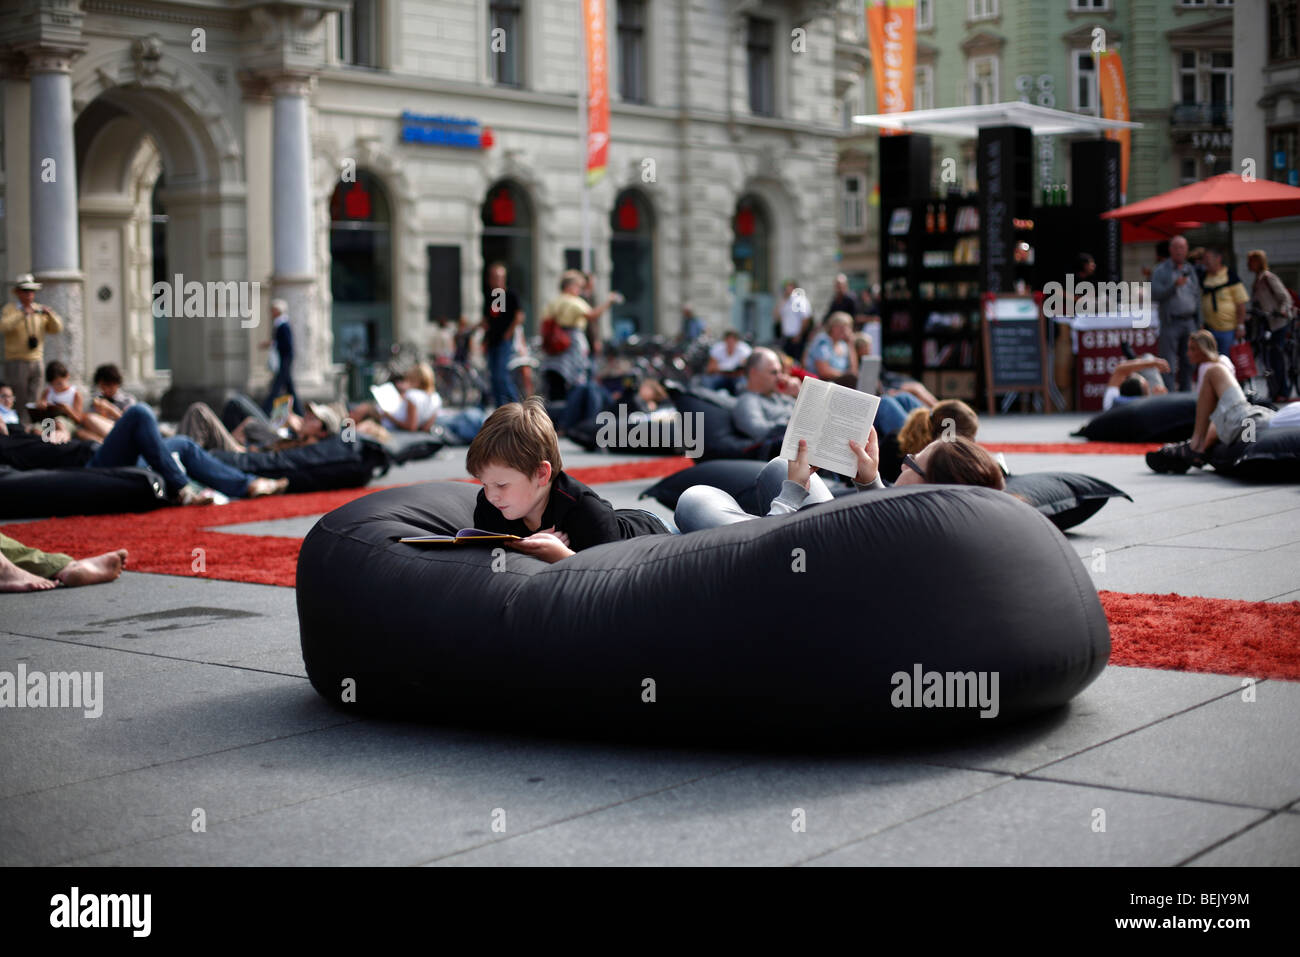 A boy reads on a beanbag cushion at an outdoor library in the Hauptplatz in the city of Graz in Austria - Stock Image